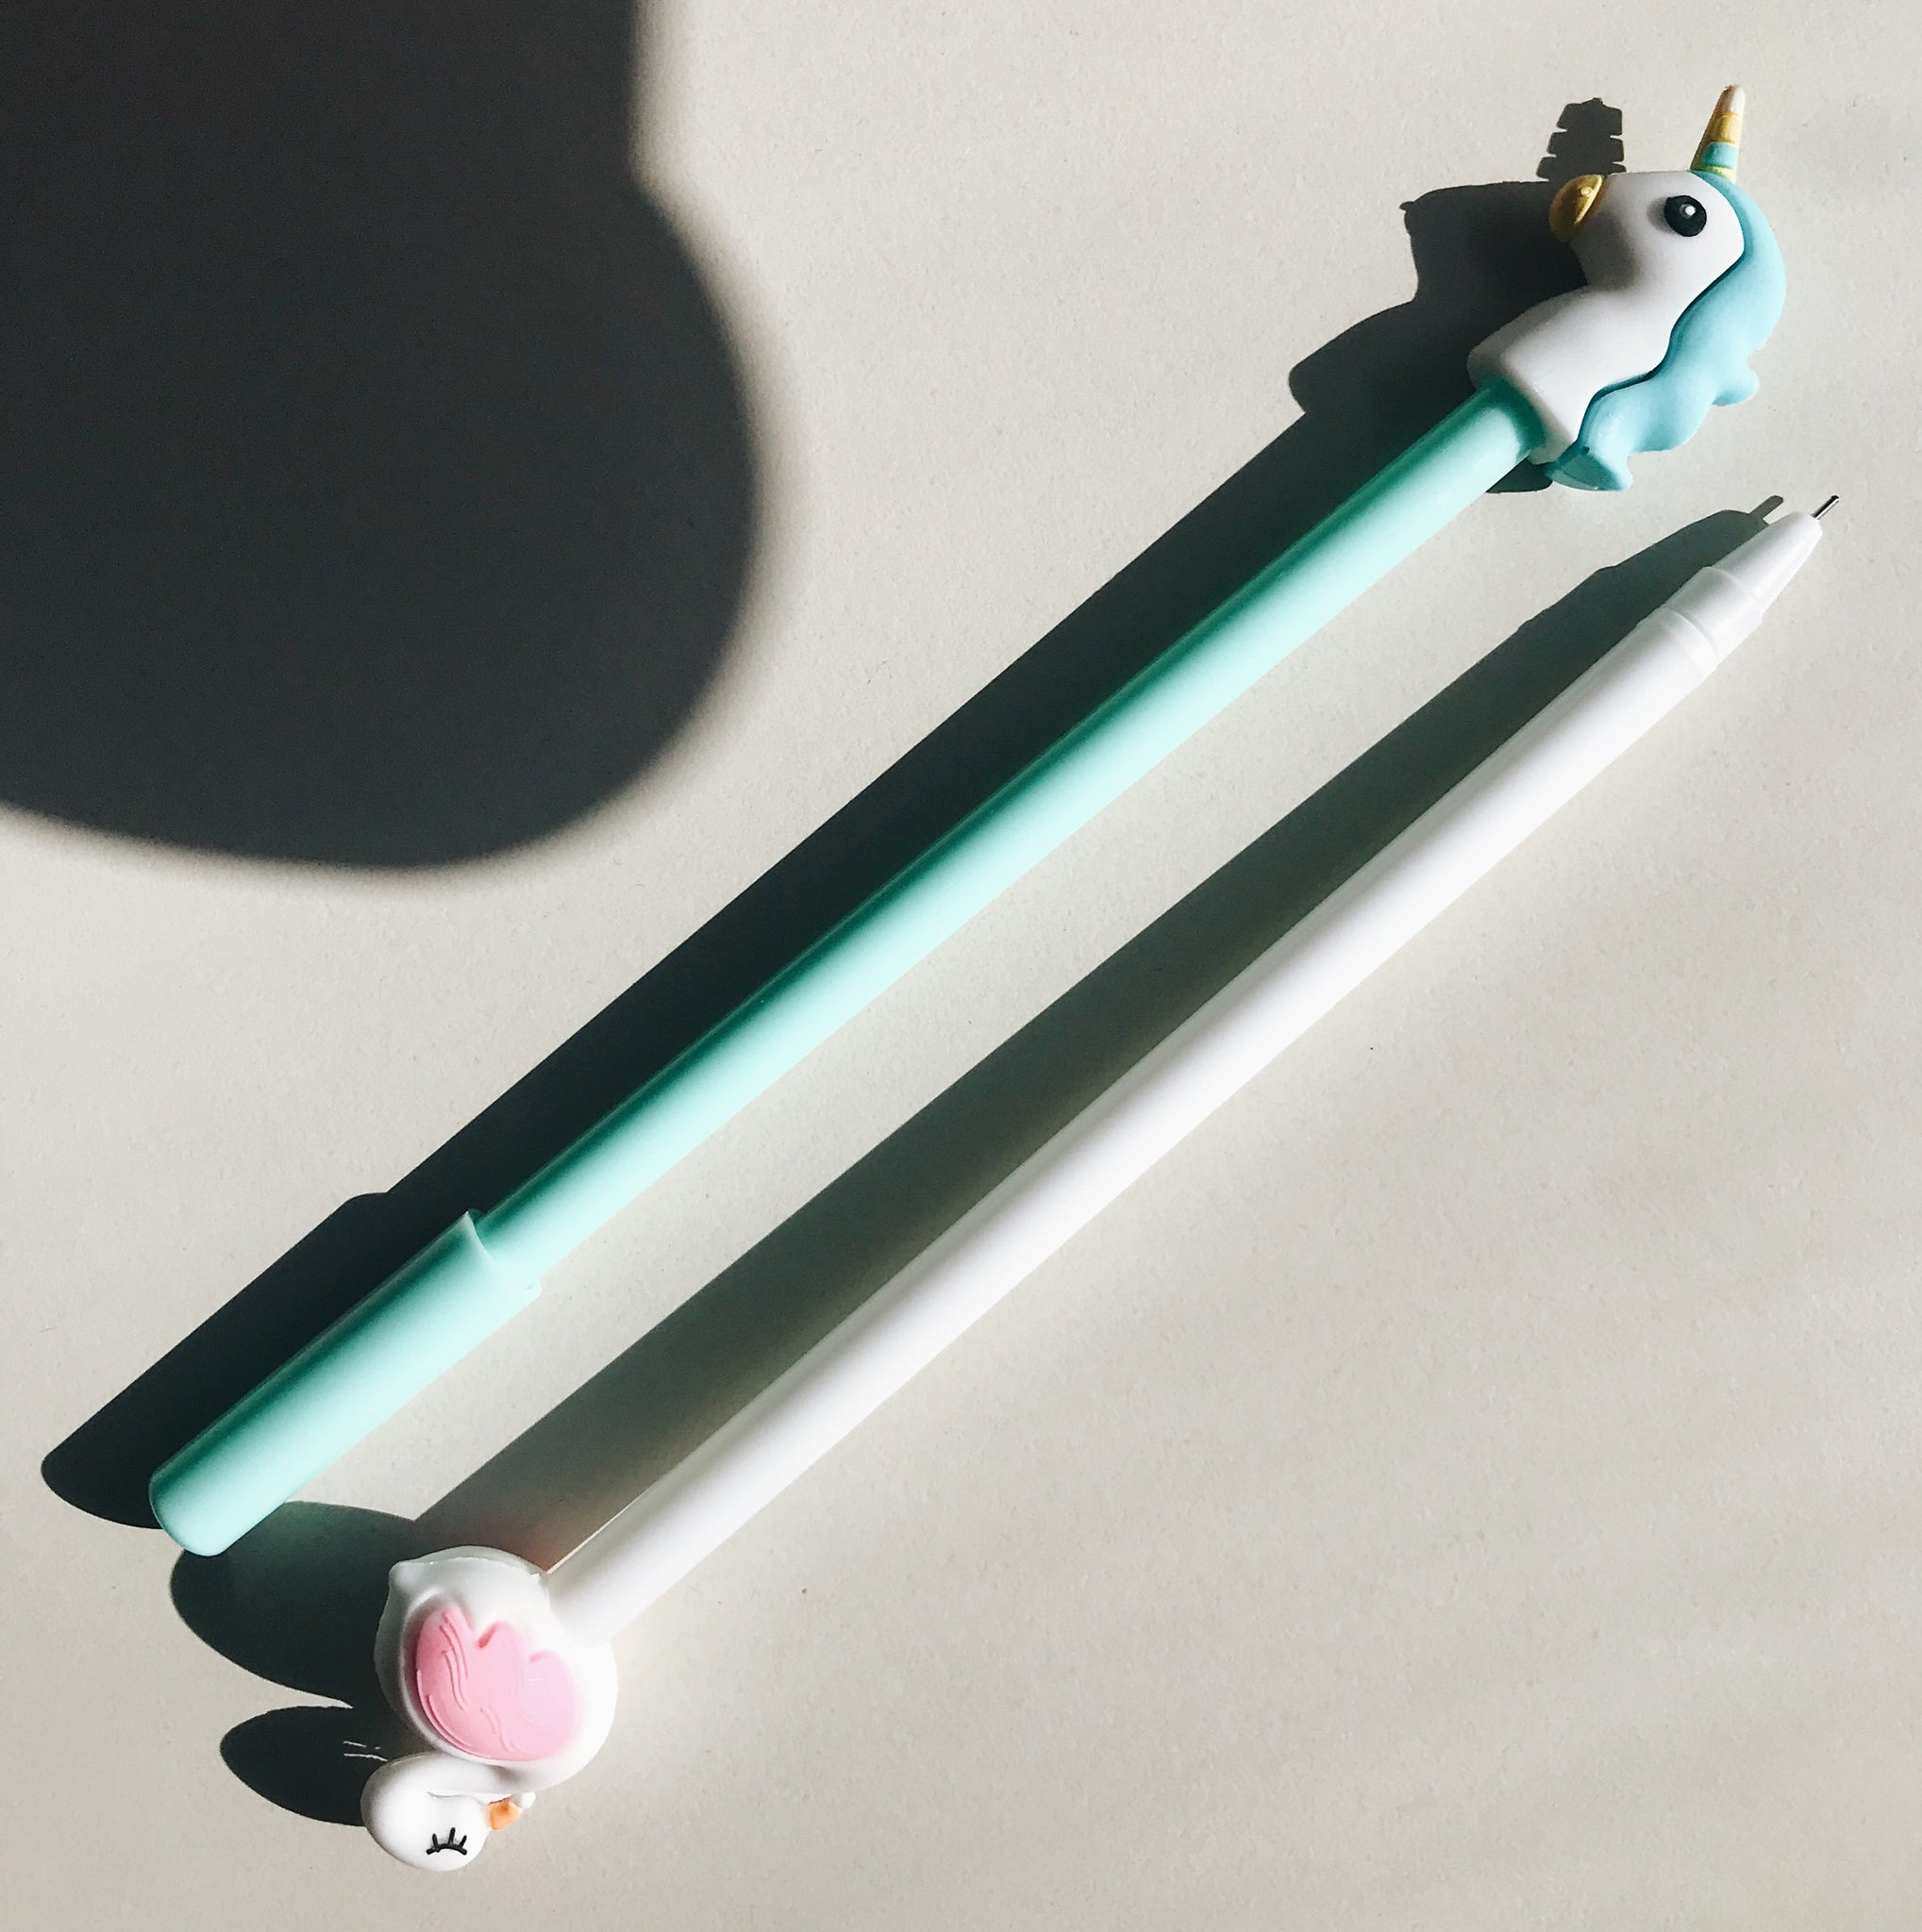 A soft-touch, turquoise unicorn shaped pen with a very fine tip.